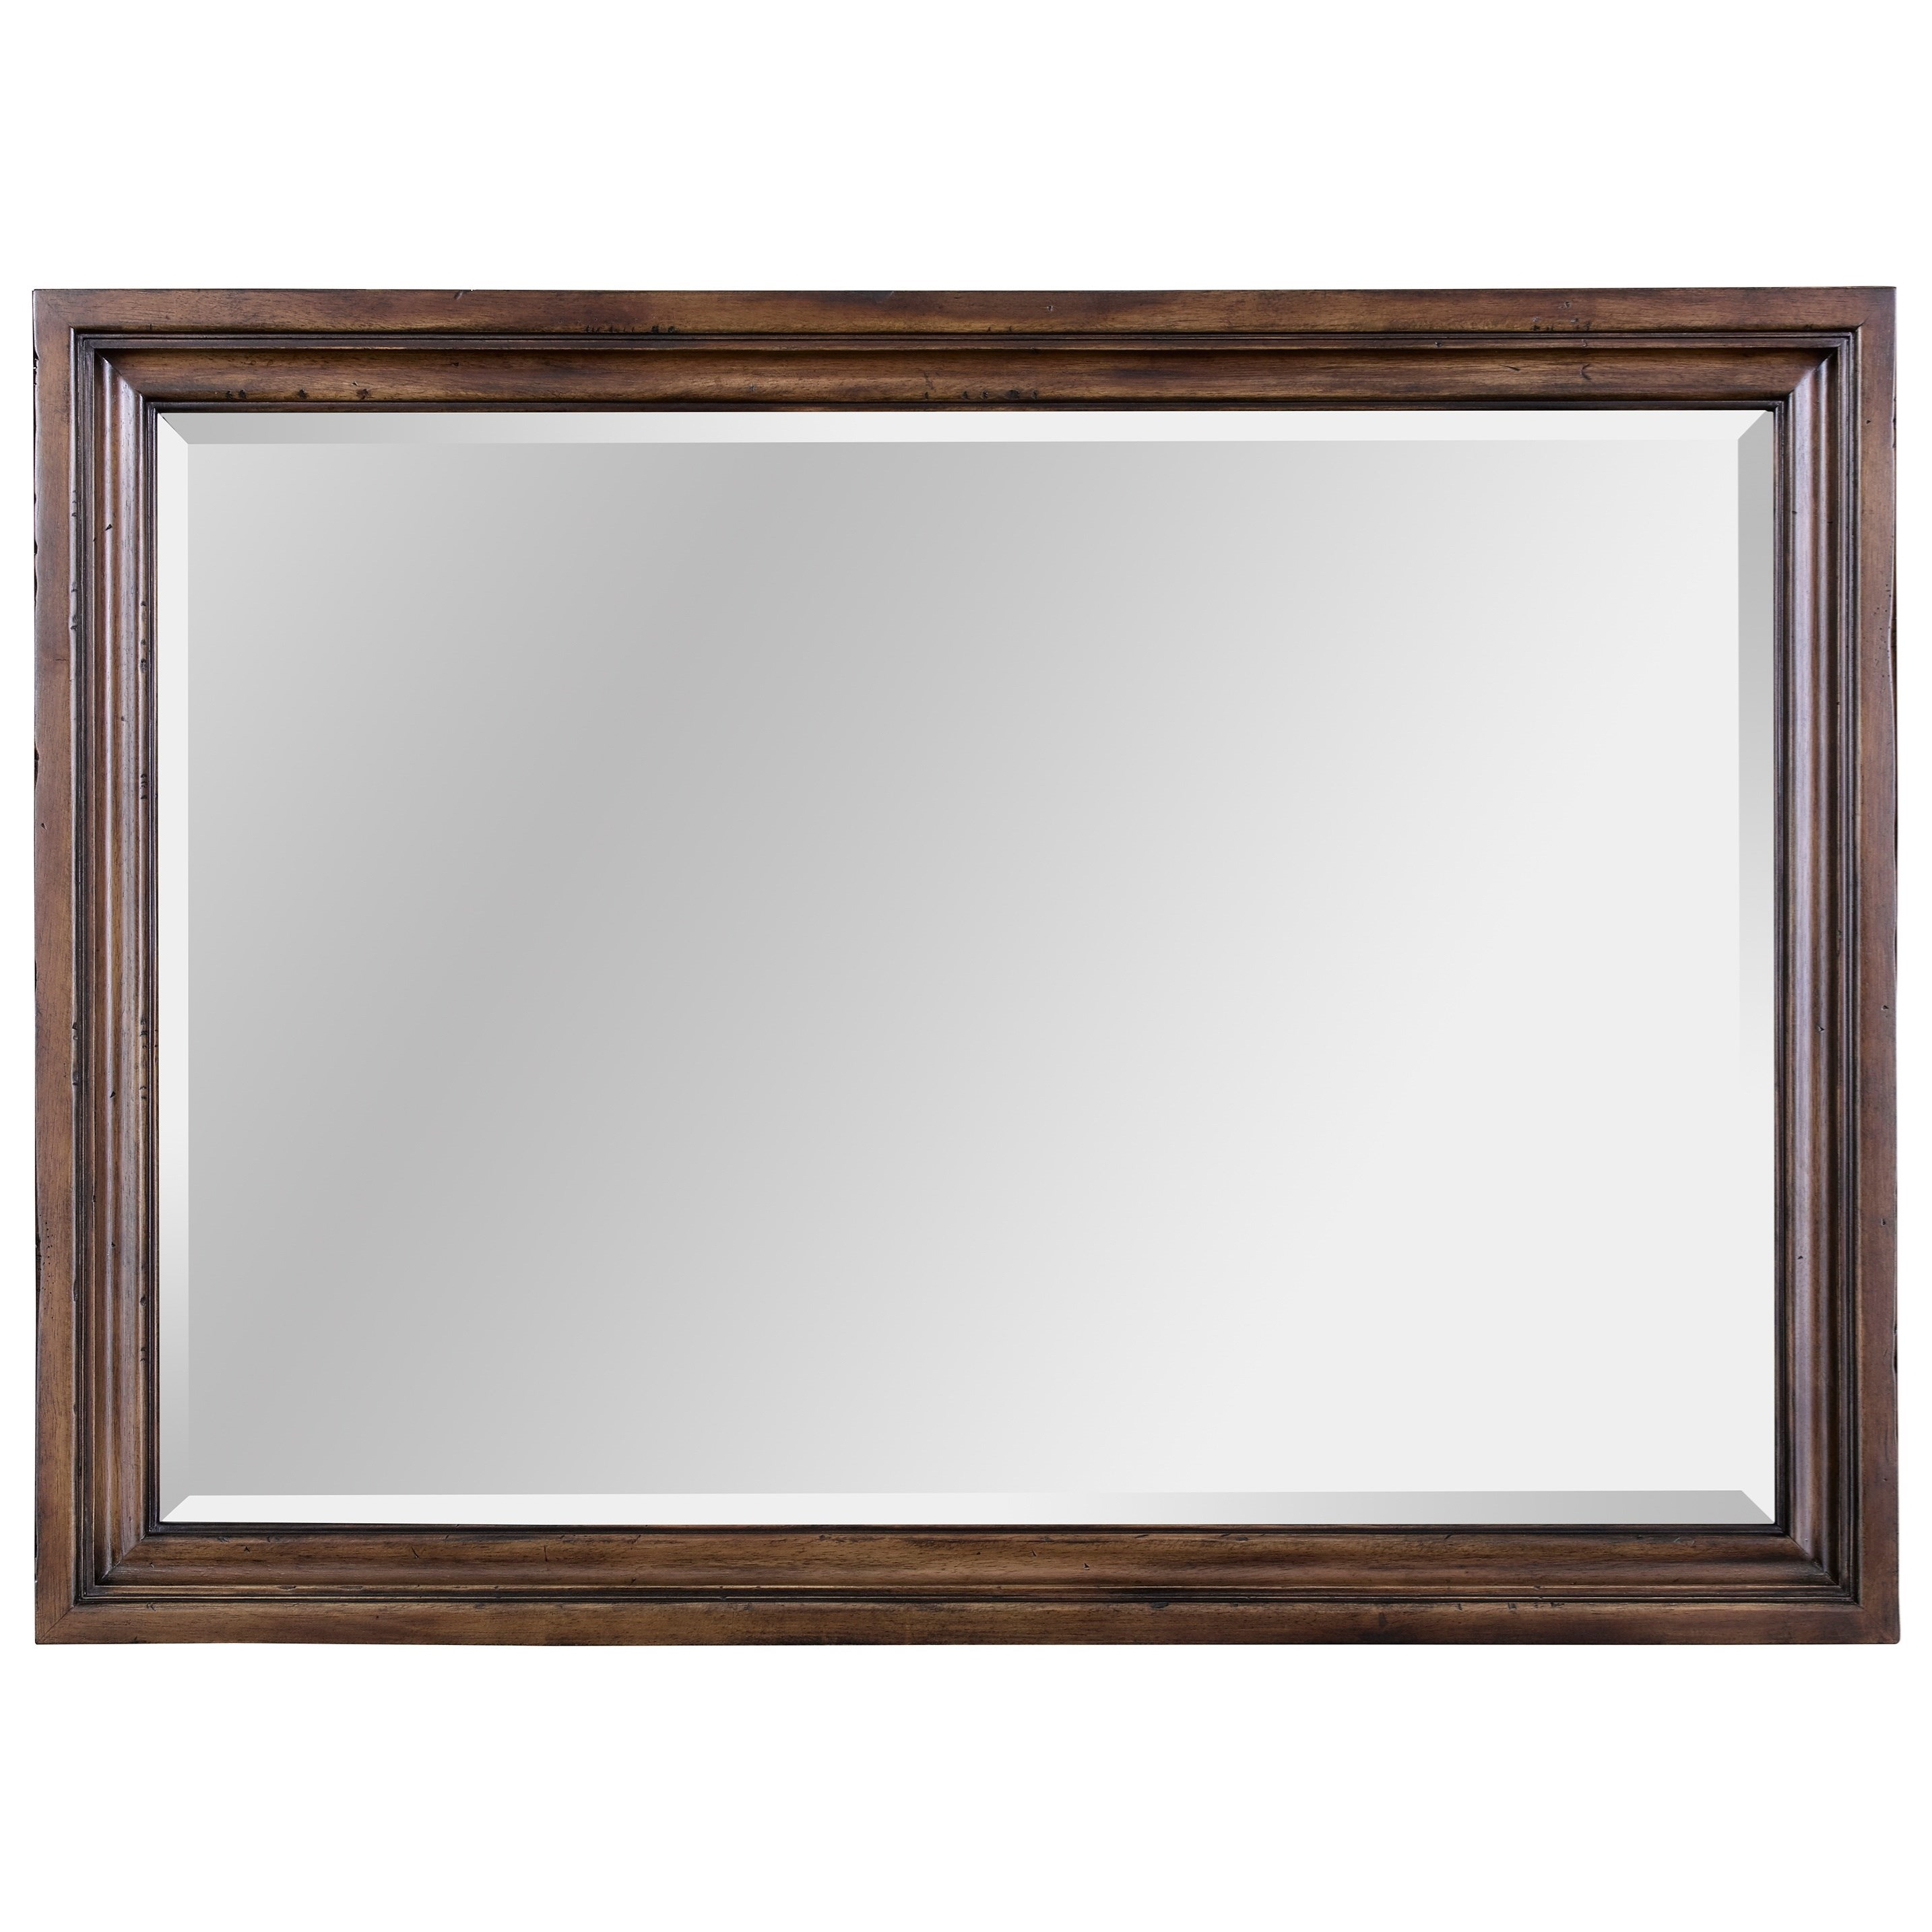 Broyhill Furniture Pike Place Picture Frame Mirror - Item Number: 4850-236